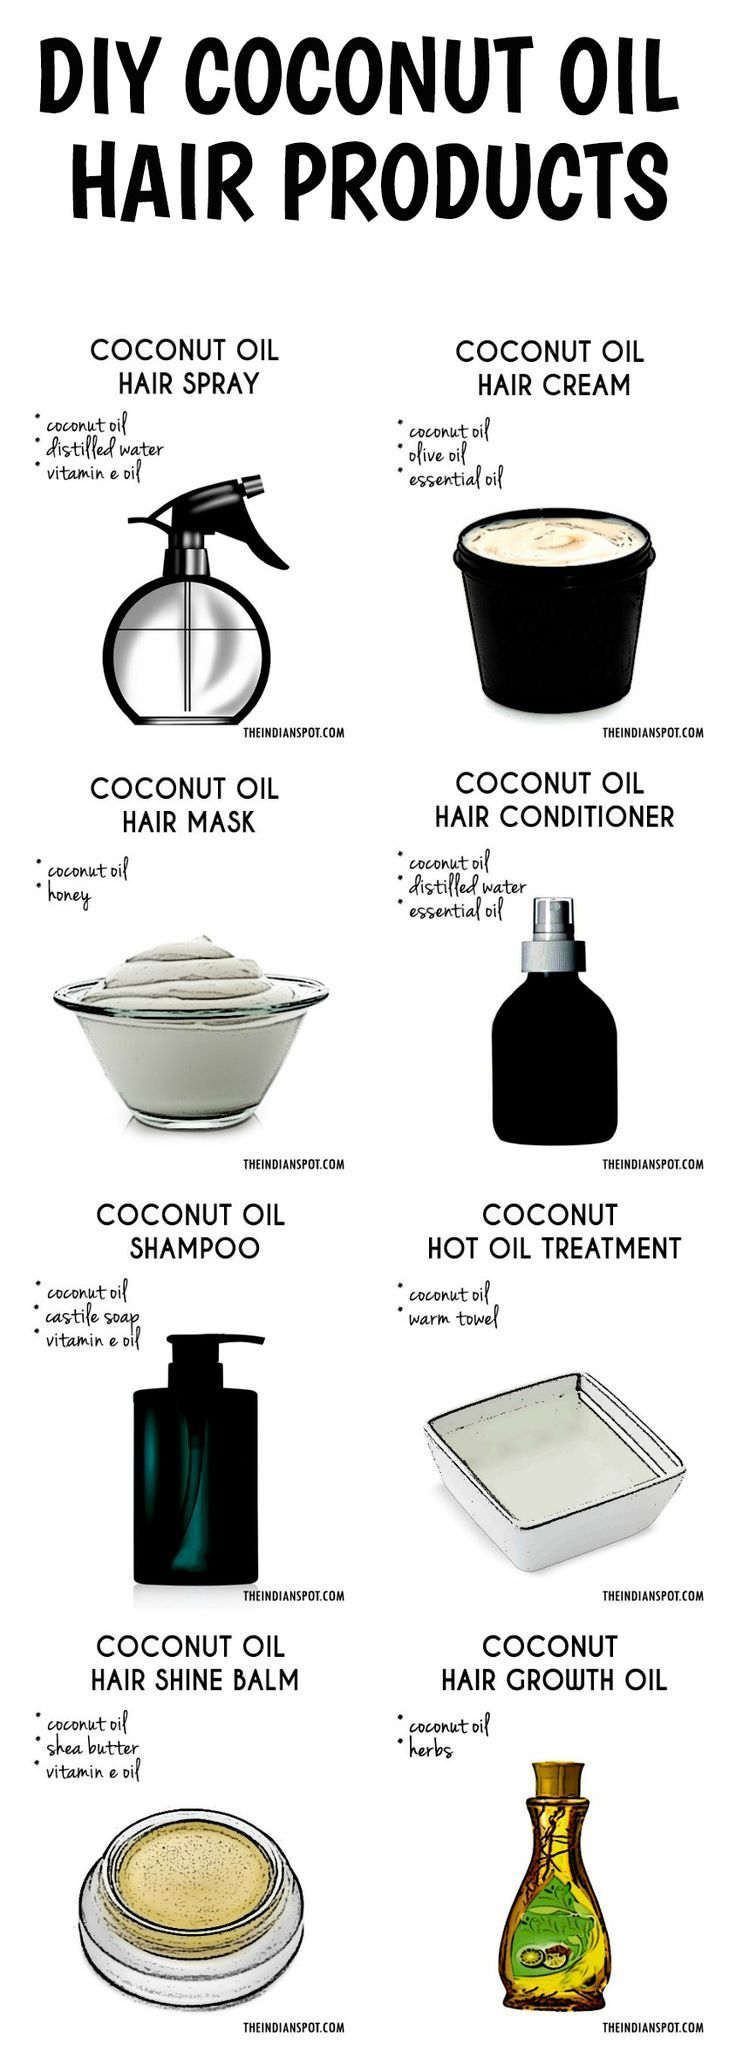 coconut oil to style hair best 20 hairstyles ideas on braided 8606 | cf1c75fd2c32925d78056eef1f834fdf black natural hairstyles natural curly hair styles